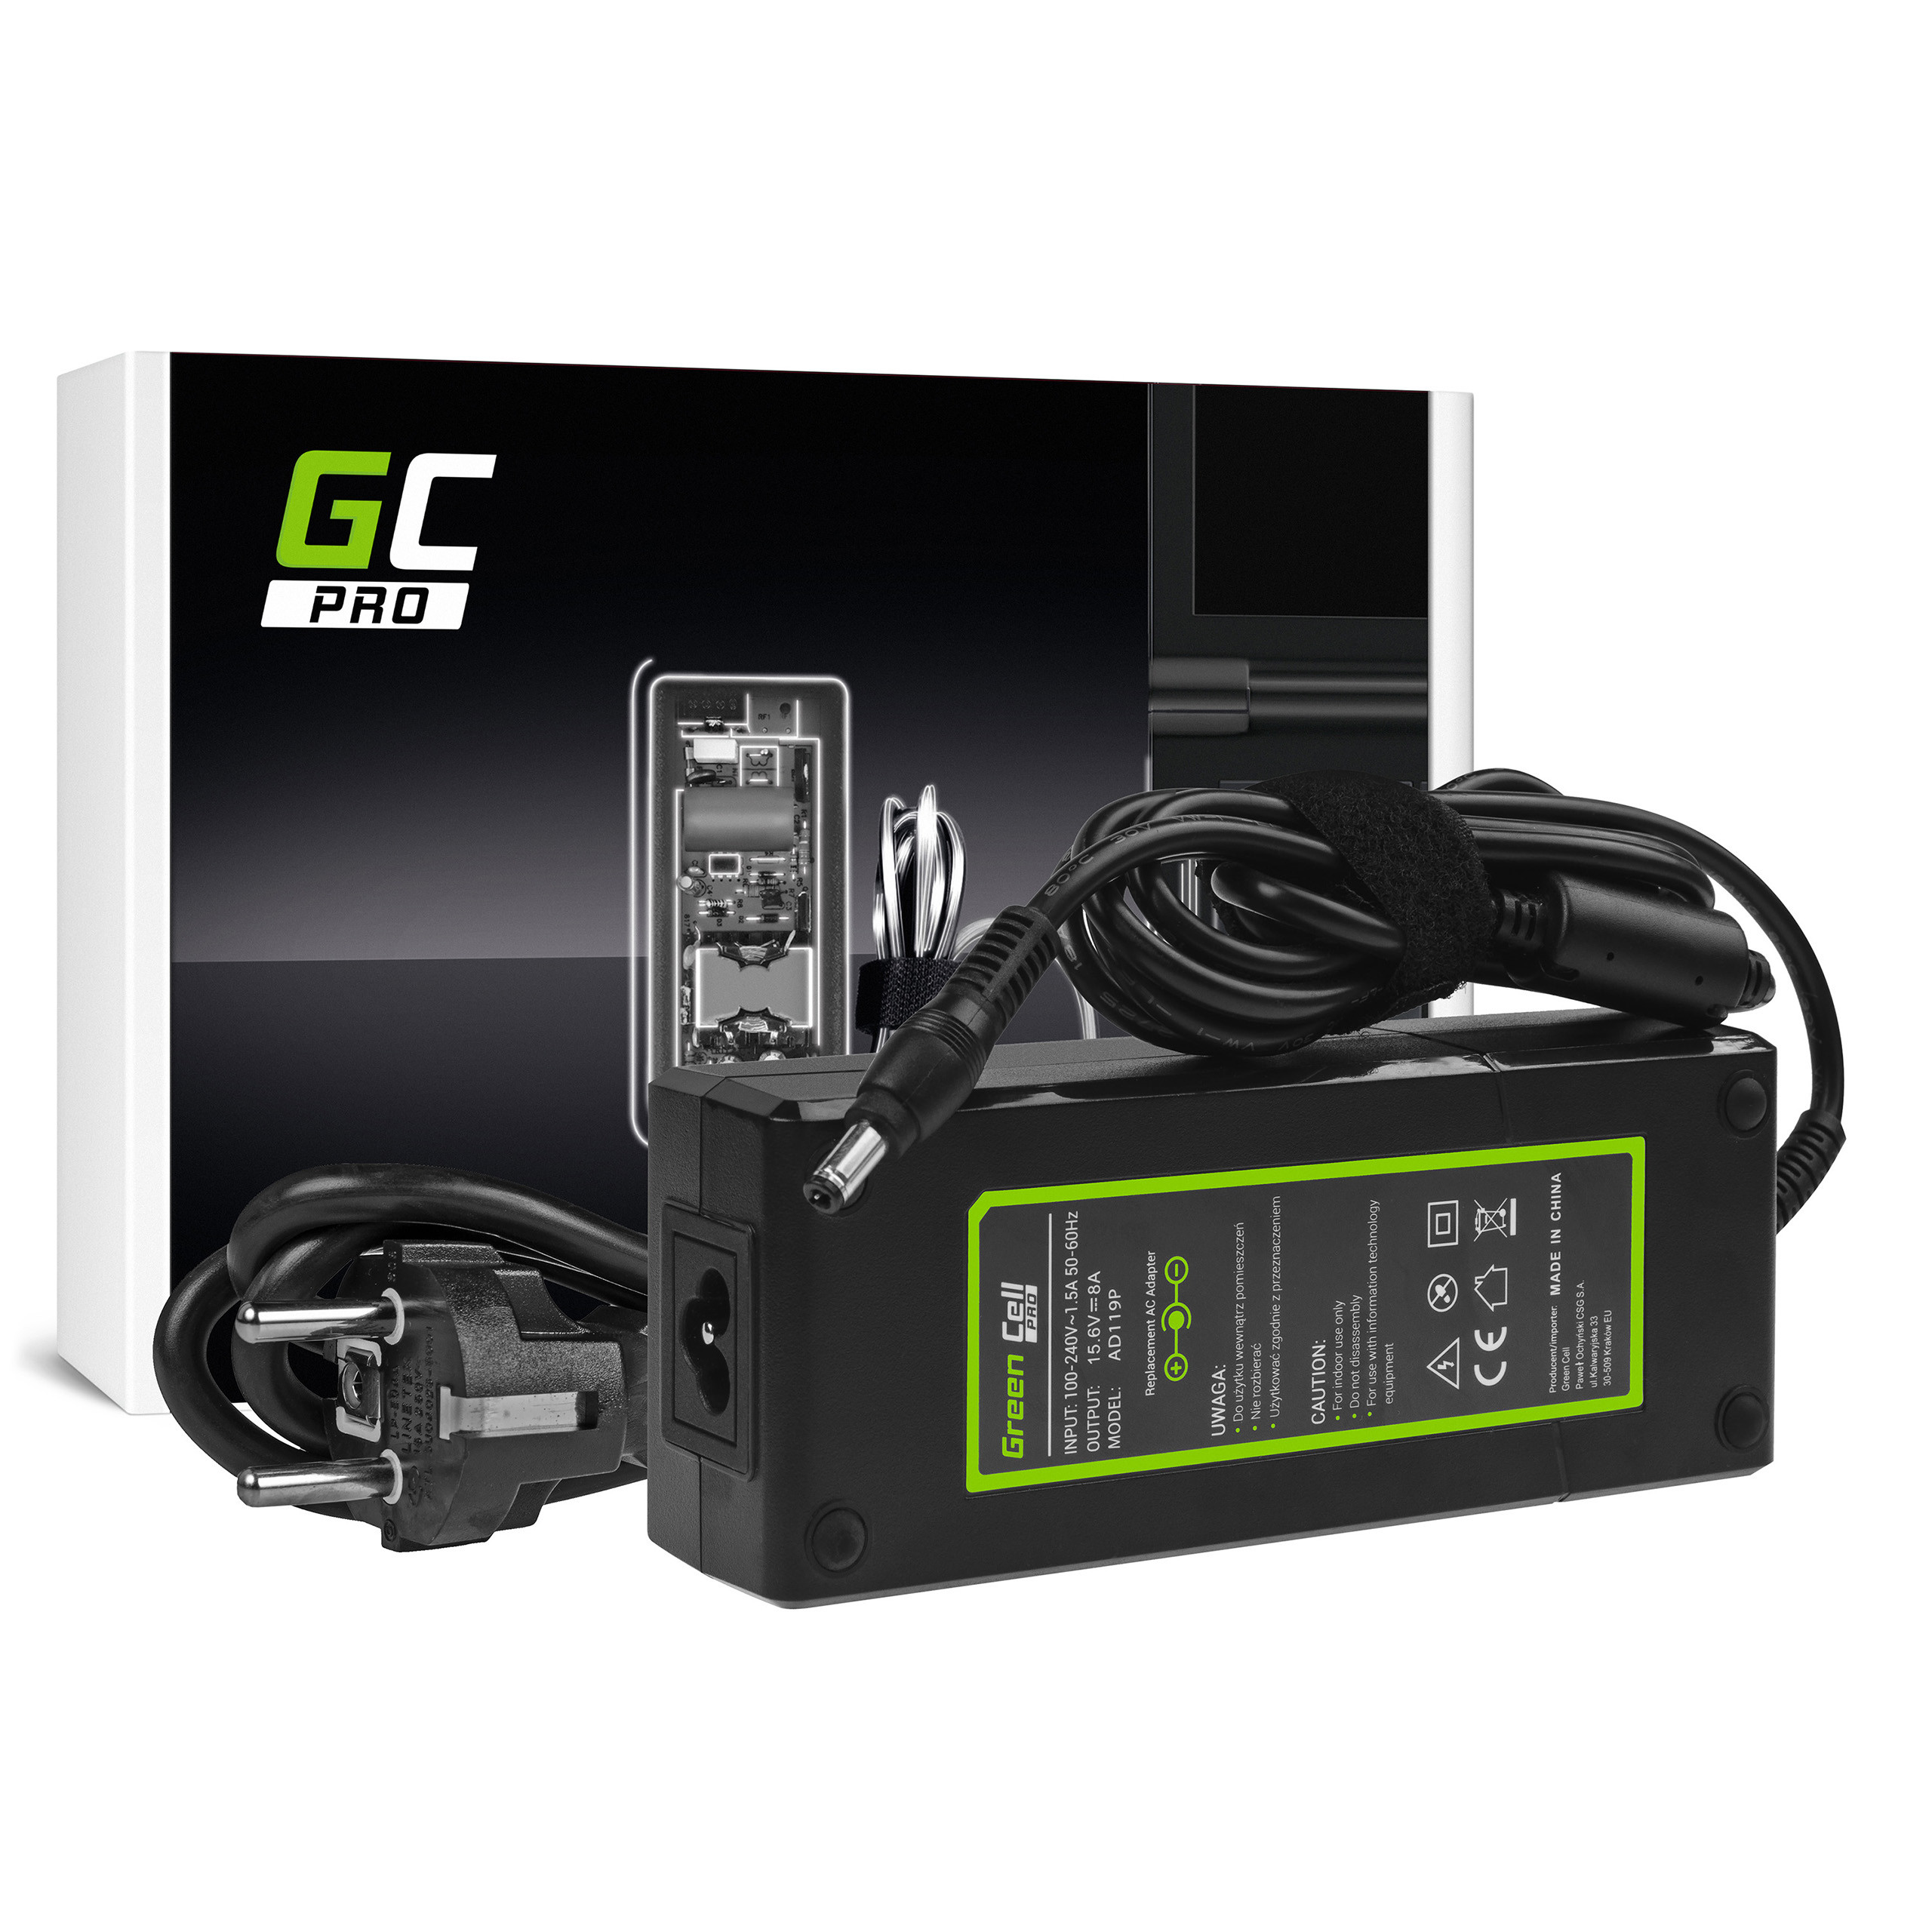 Charger Green Cell PRO 15.6V 8A CF-AA1683A for Panasonic ToughBook CF-19 CF-29 CF-30 CF-31 CF-50 CF-51 CF-52 CF-53 CF-73 CF-74